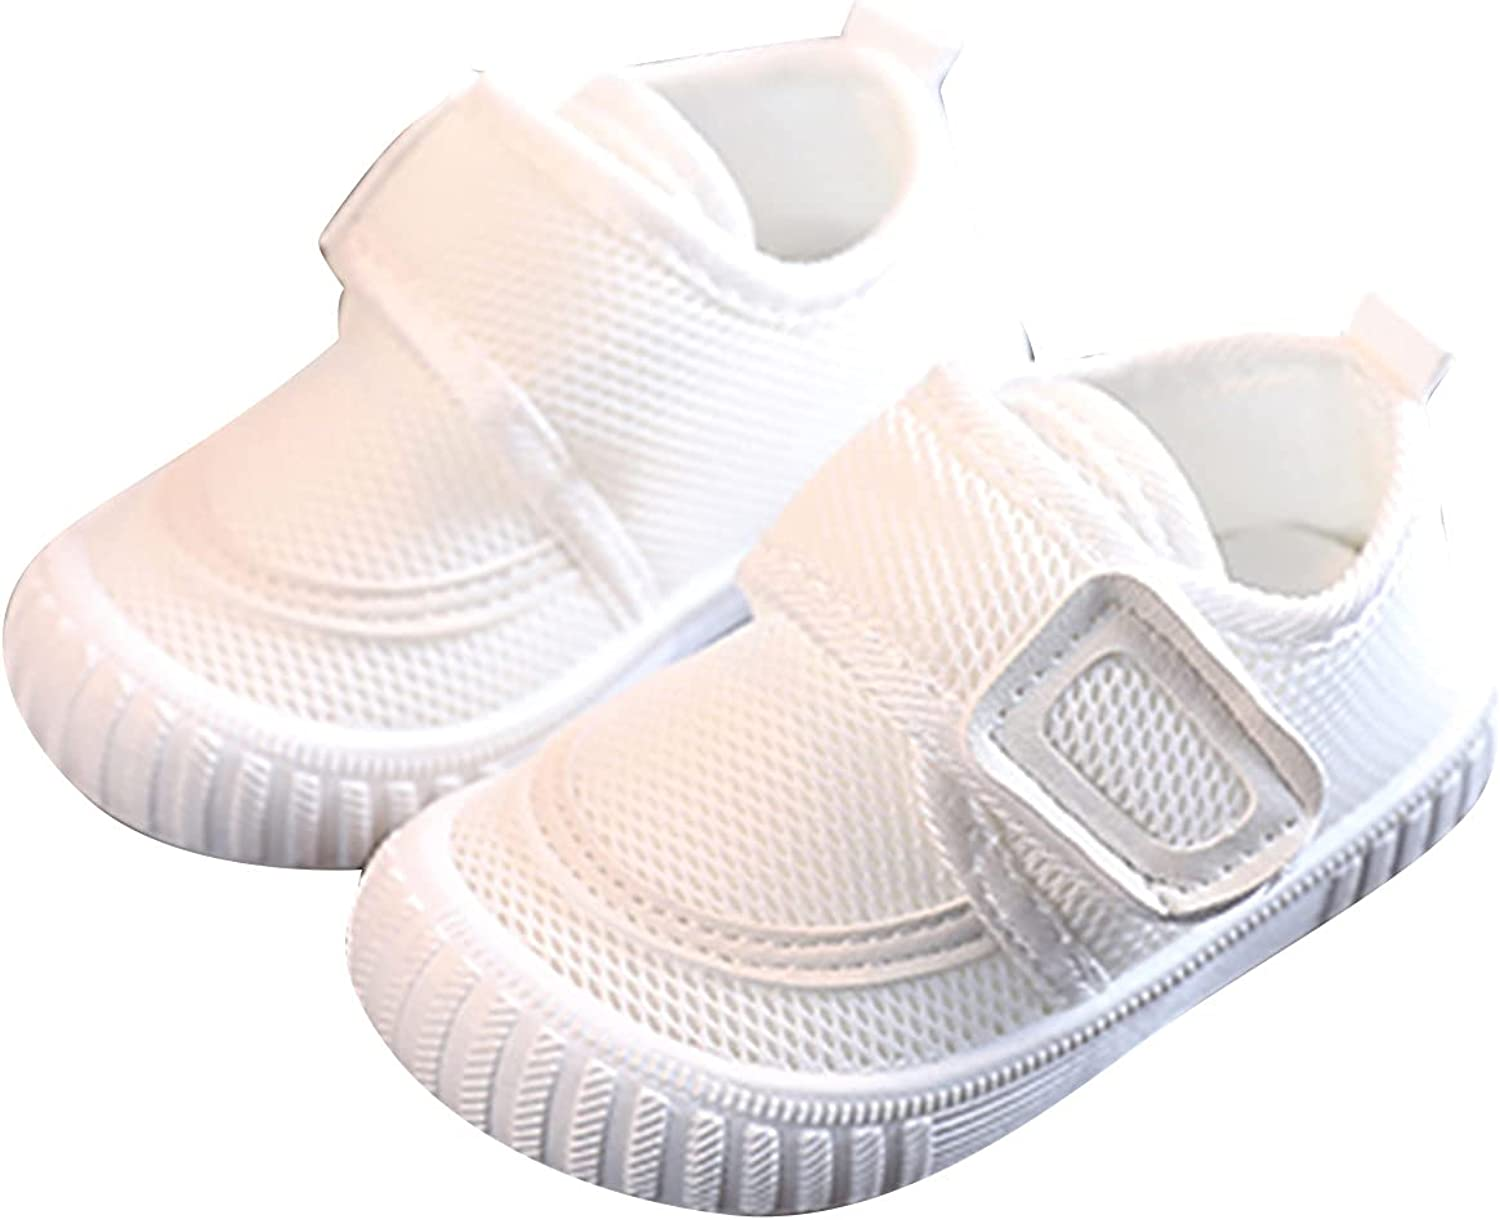 Toddler Infant Baby Soft Sole Mesh Shoes Cute Breathable Anti Slip Outdoor Casual Shoes